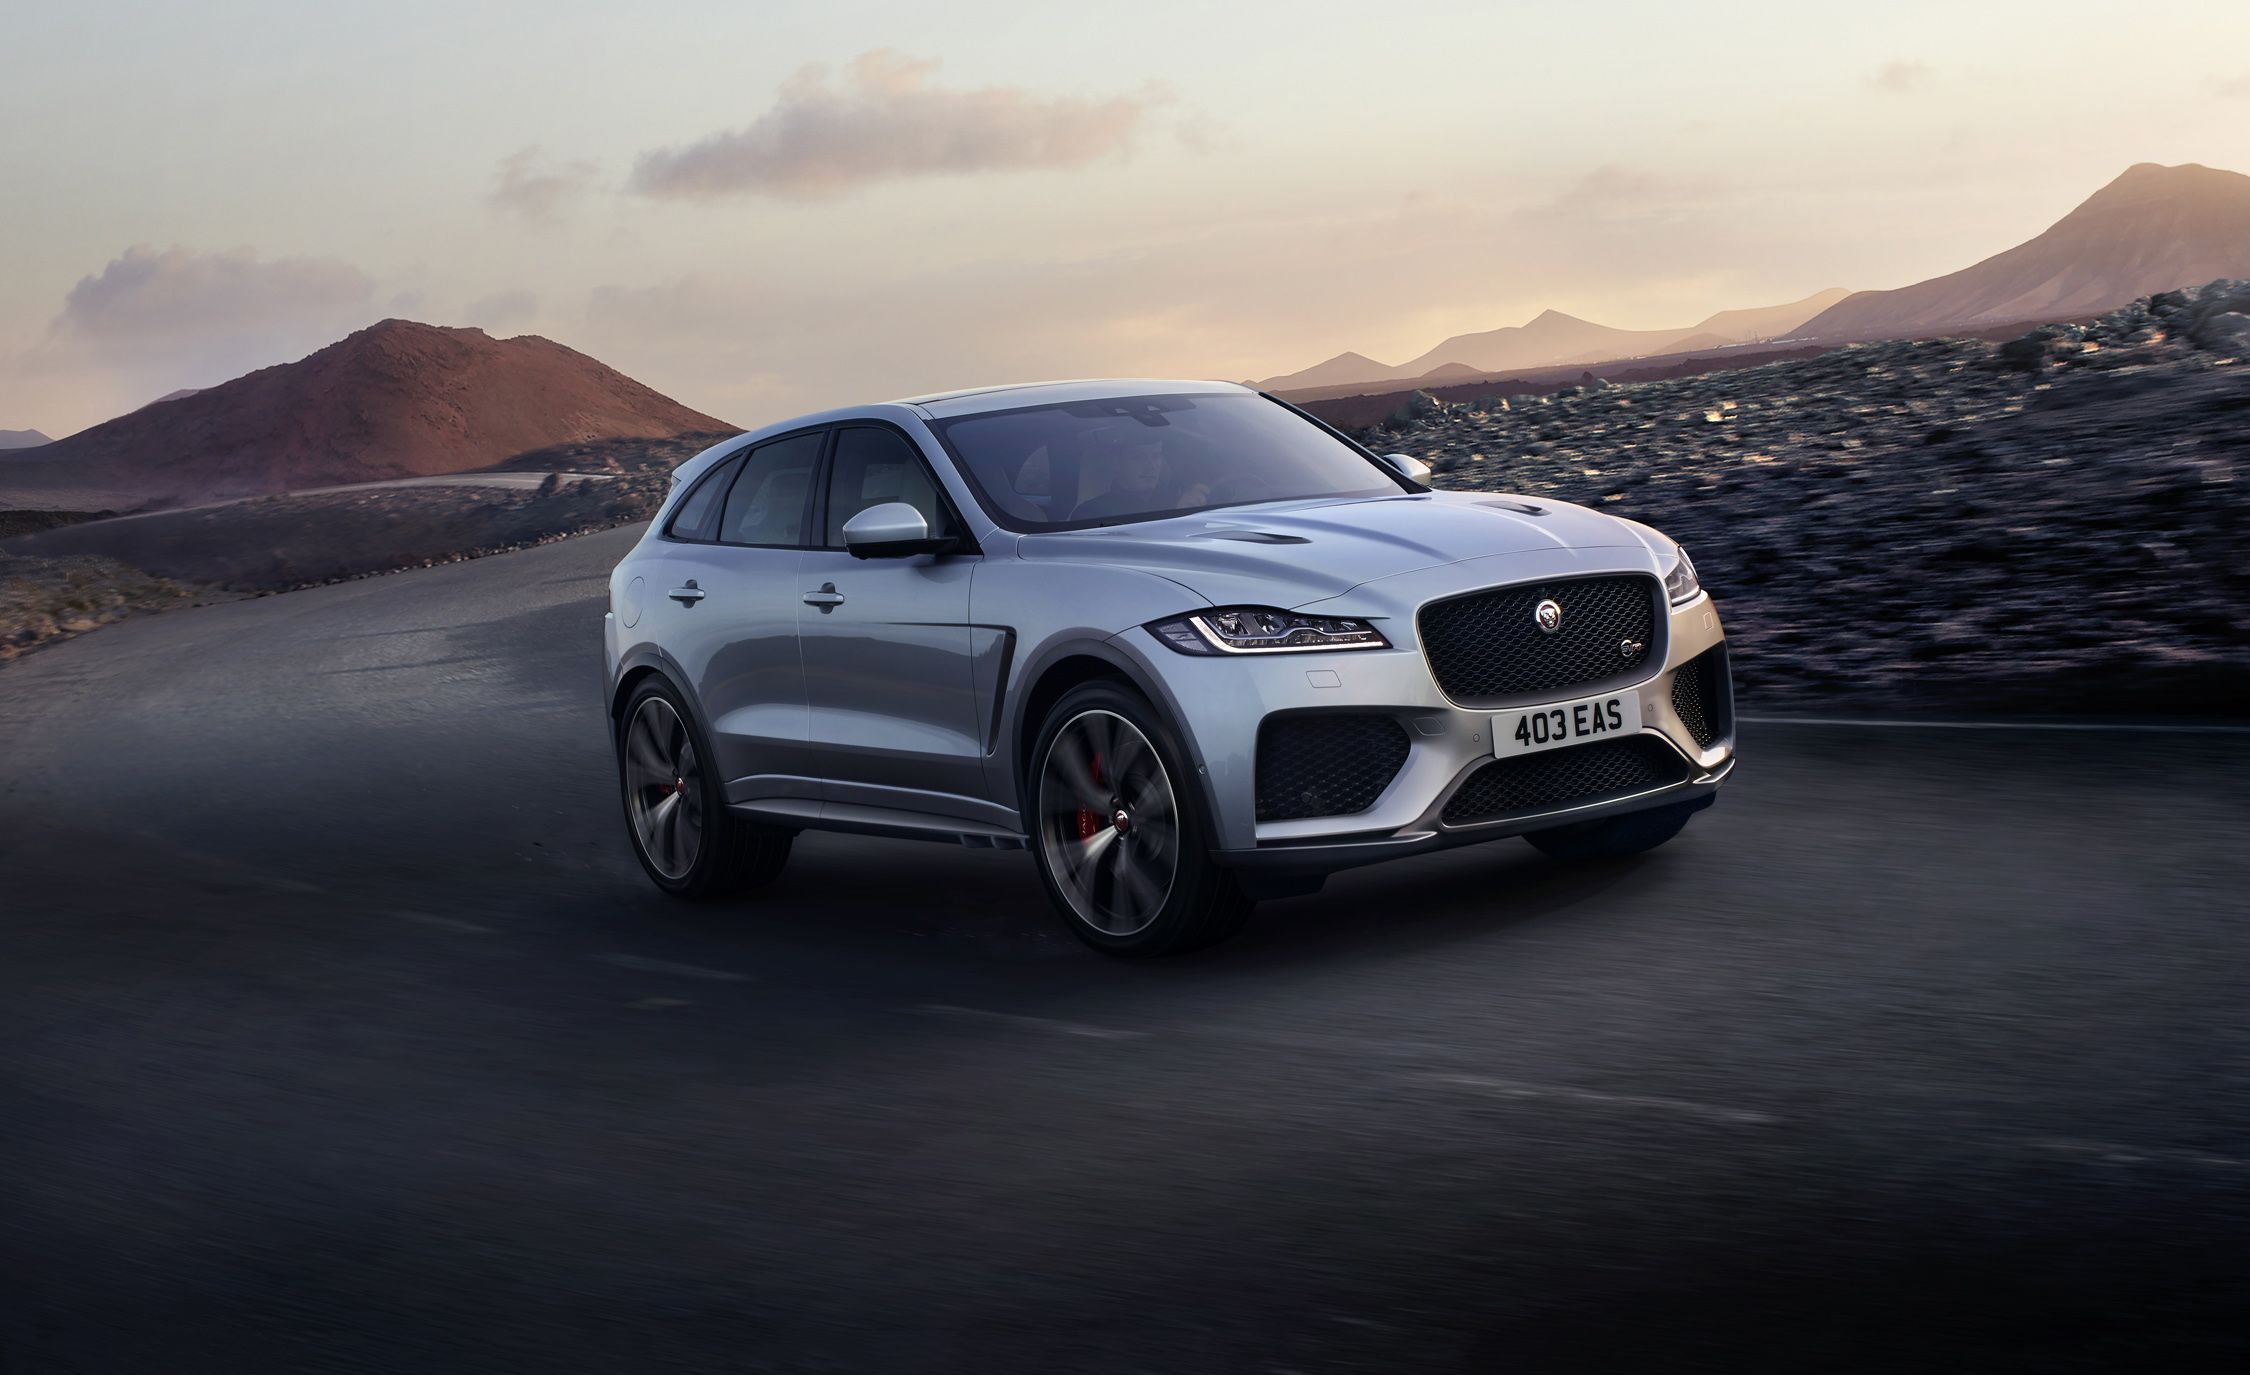 2019 Jaguar F Pace SVR: The Full Bore Jag SUV Has Arrived